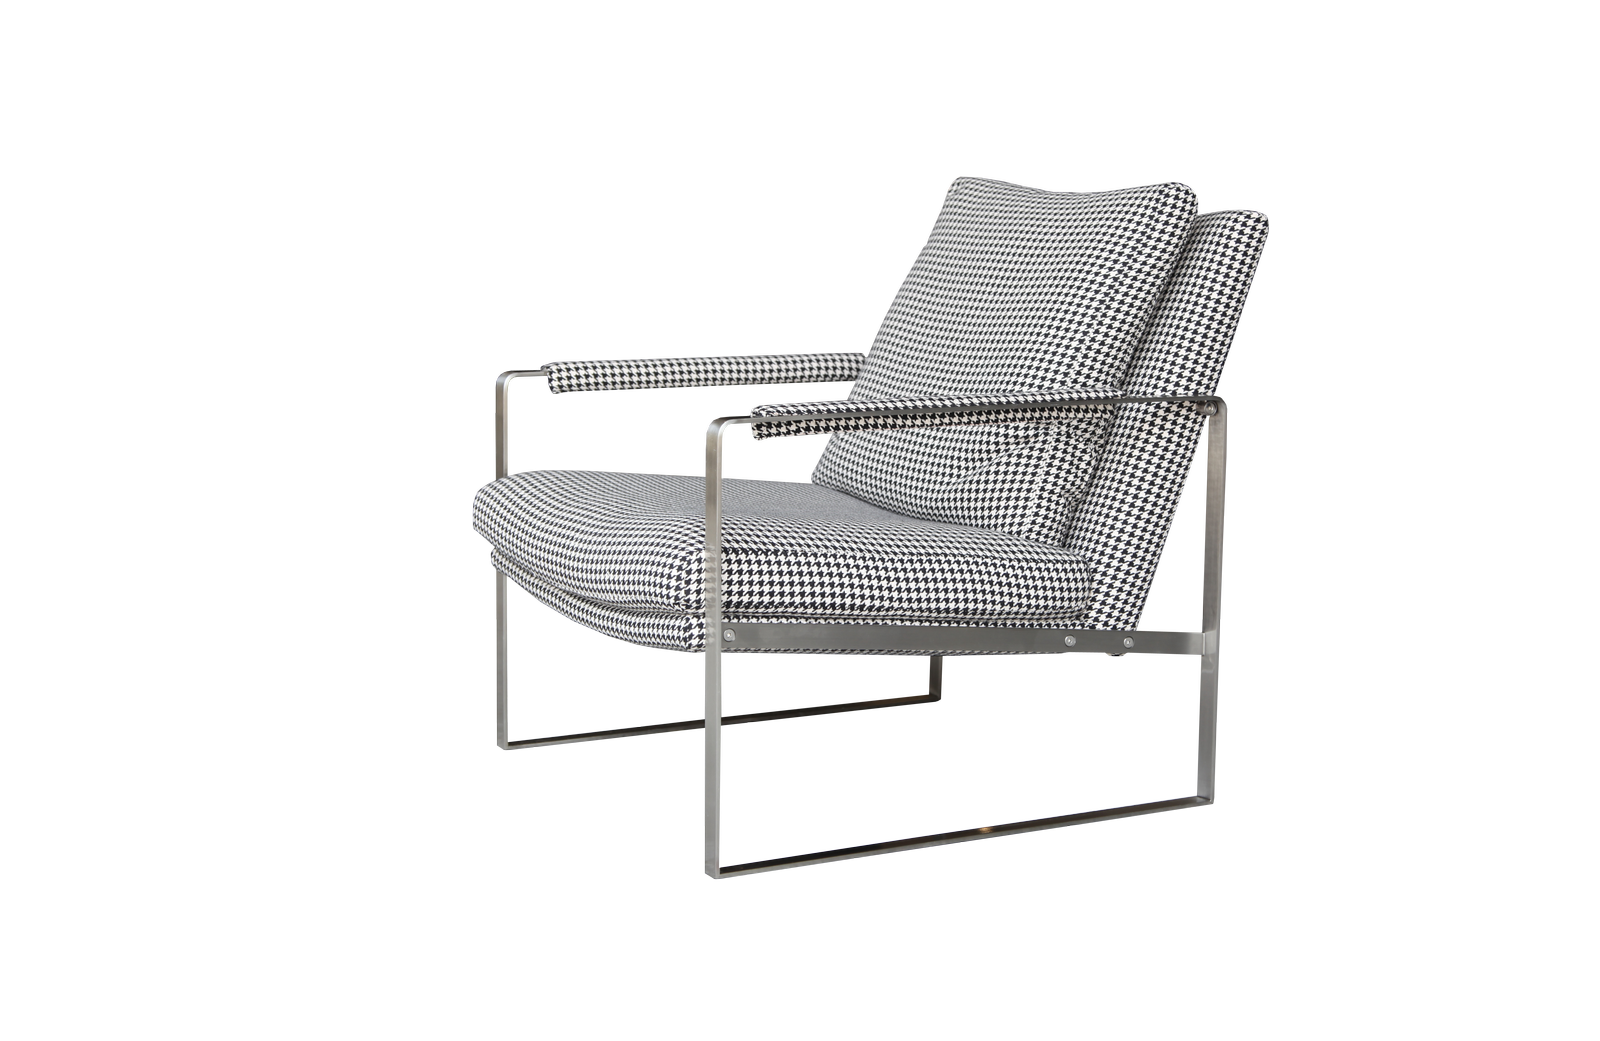 Zara Armchair   The Zara Armchair Has A Modernist Character With Its  Distinctive Stainless Steel Arms That Also Act As The Support Structure.